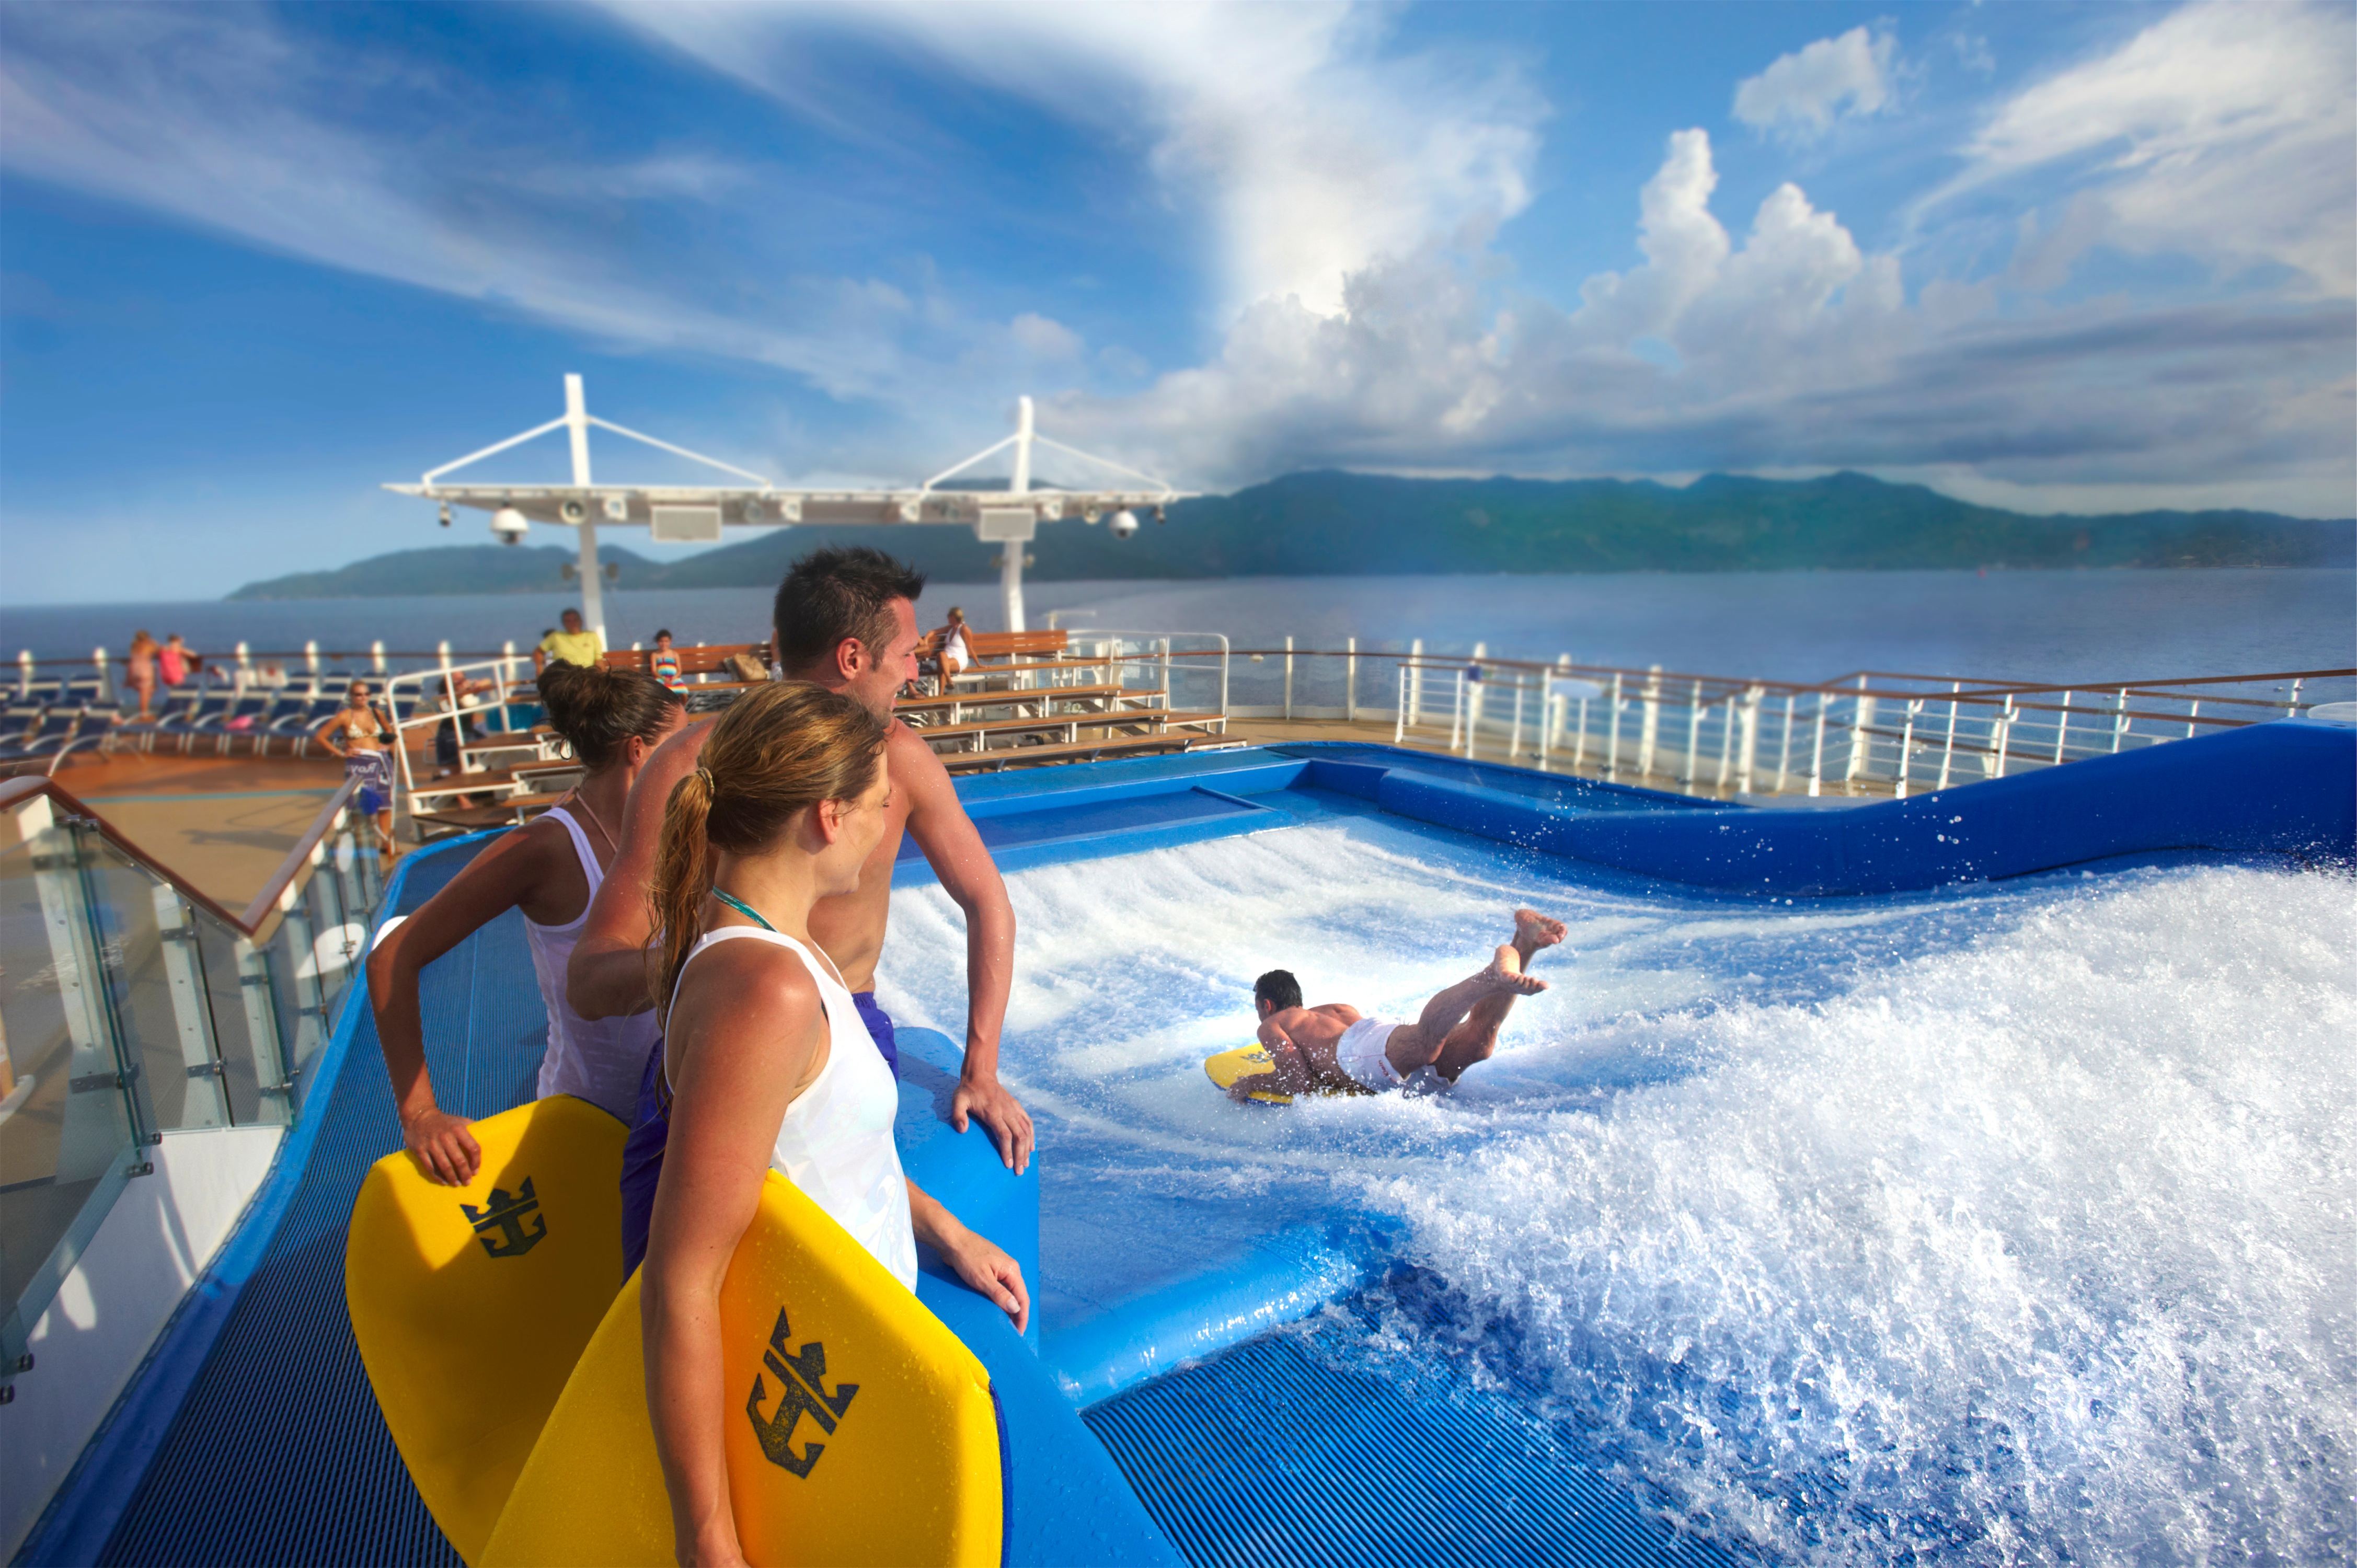 Royal Caribbean International Oasis of the Seas Exterior Flowrider DSC 4158.jpg